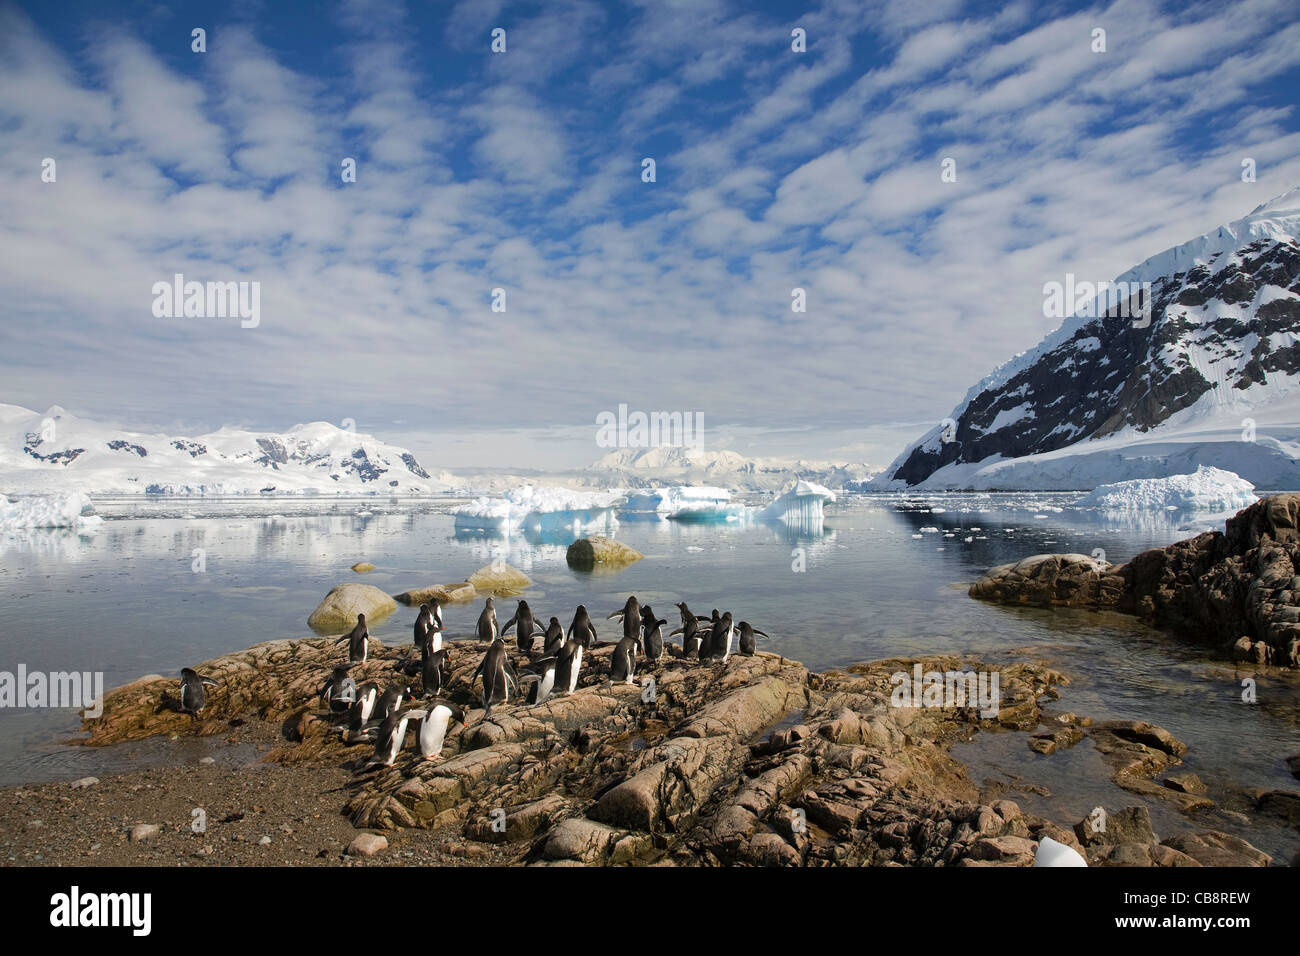 Gentoo Penguins (Pygoscelis papua) at penguin colony and icebergs in Antarctic sea at Neko Harbour, Andvord Bay, - Stock Image